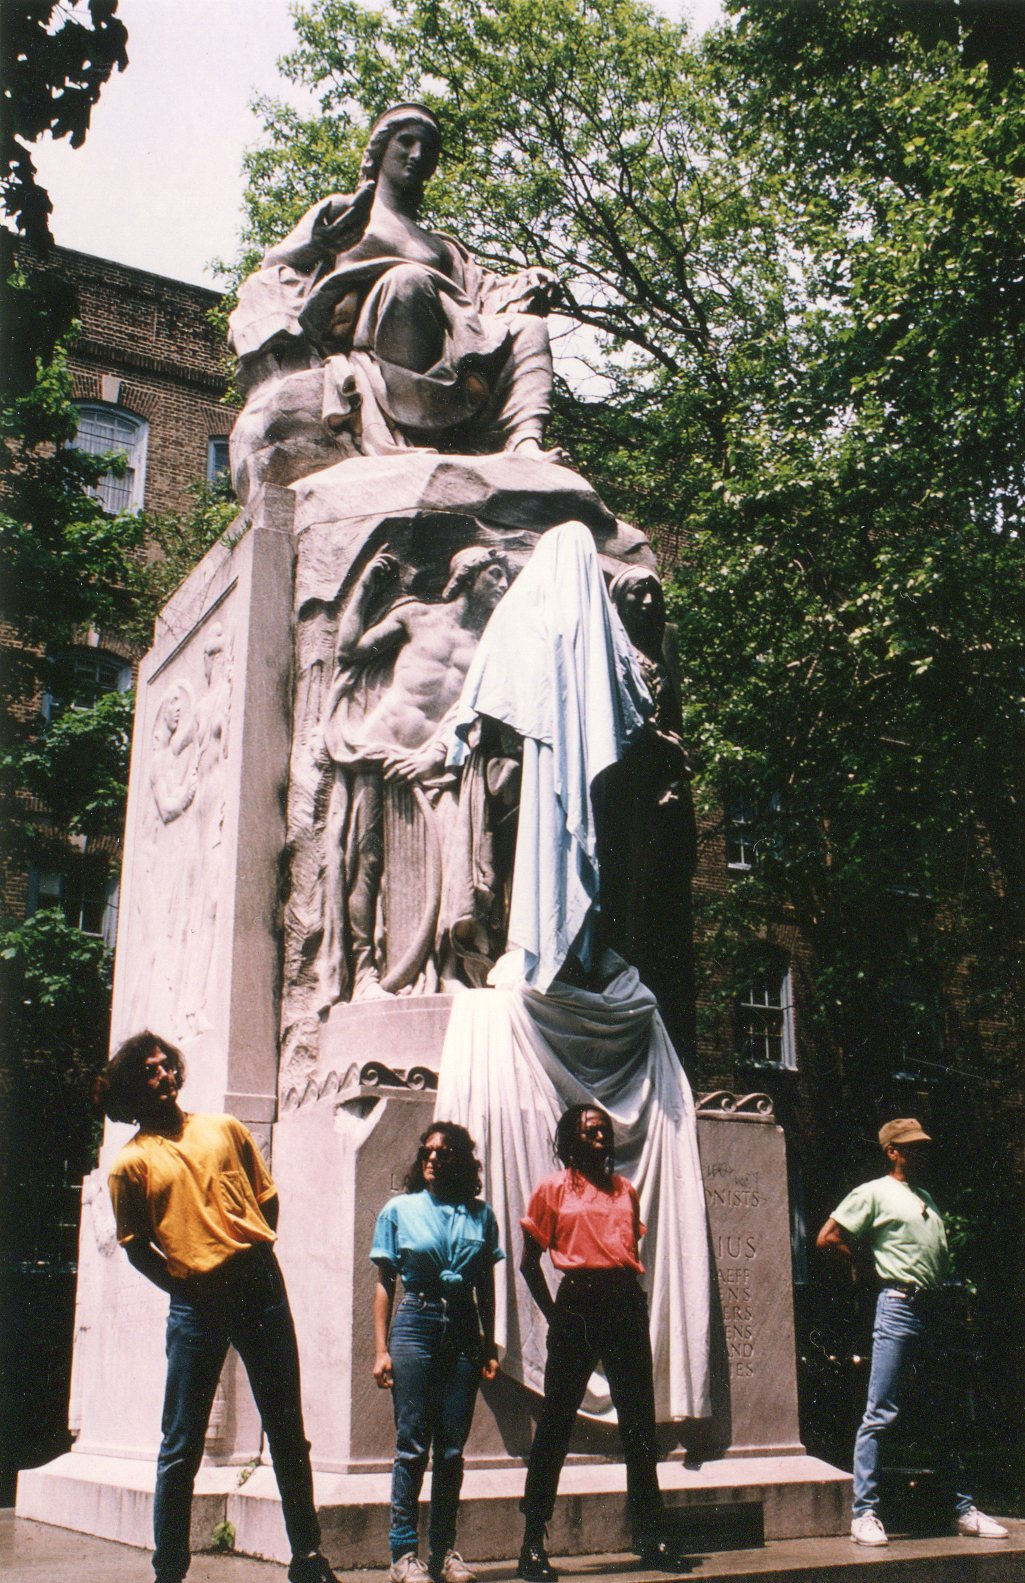 STATUES-by-Michael-Hollinger-1992.jpg